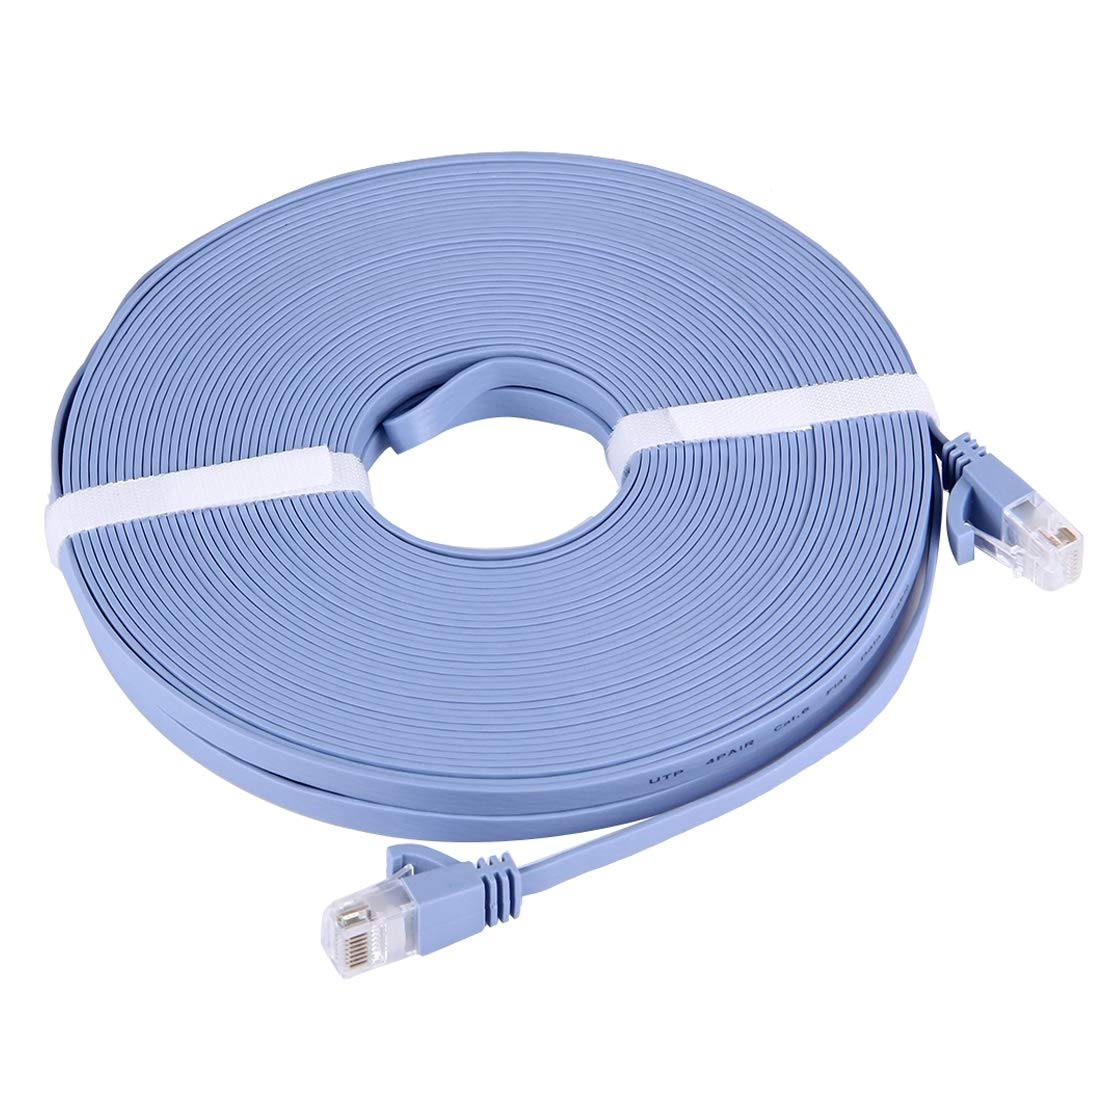 LIAOTIAN Length Baby Blue CAT6 Ultra-Thin Flat Ethernet Network LAN Cable 3m